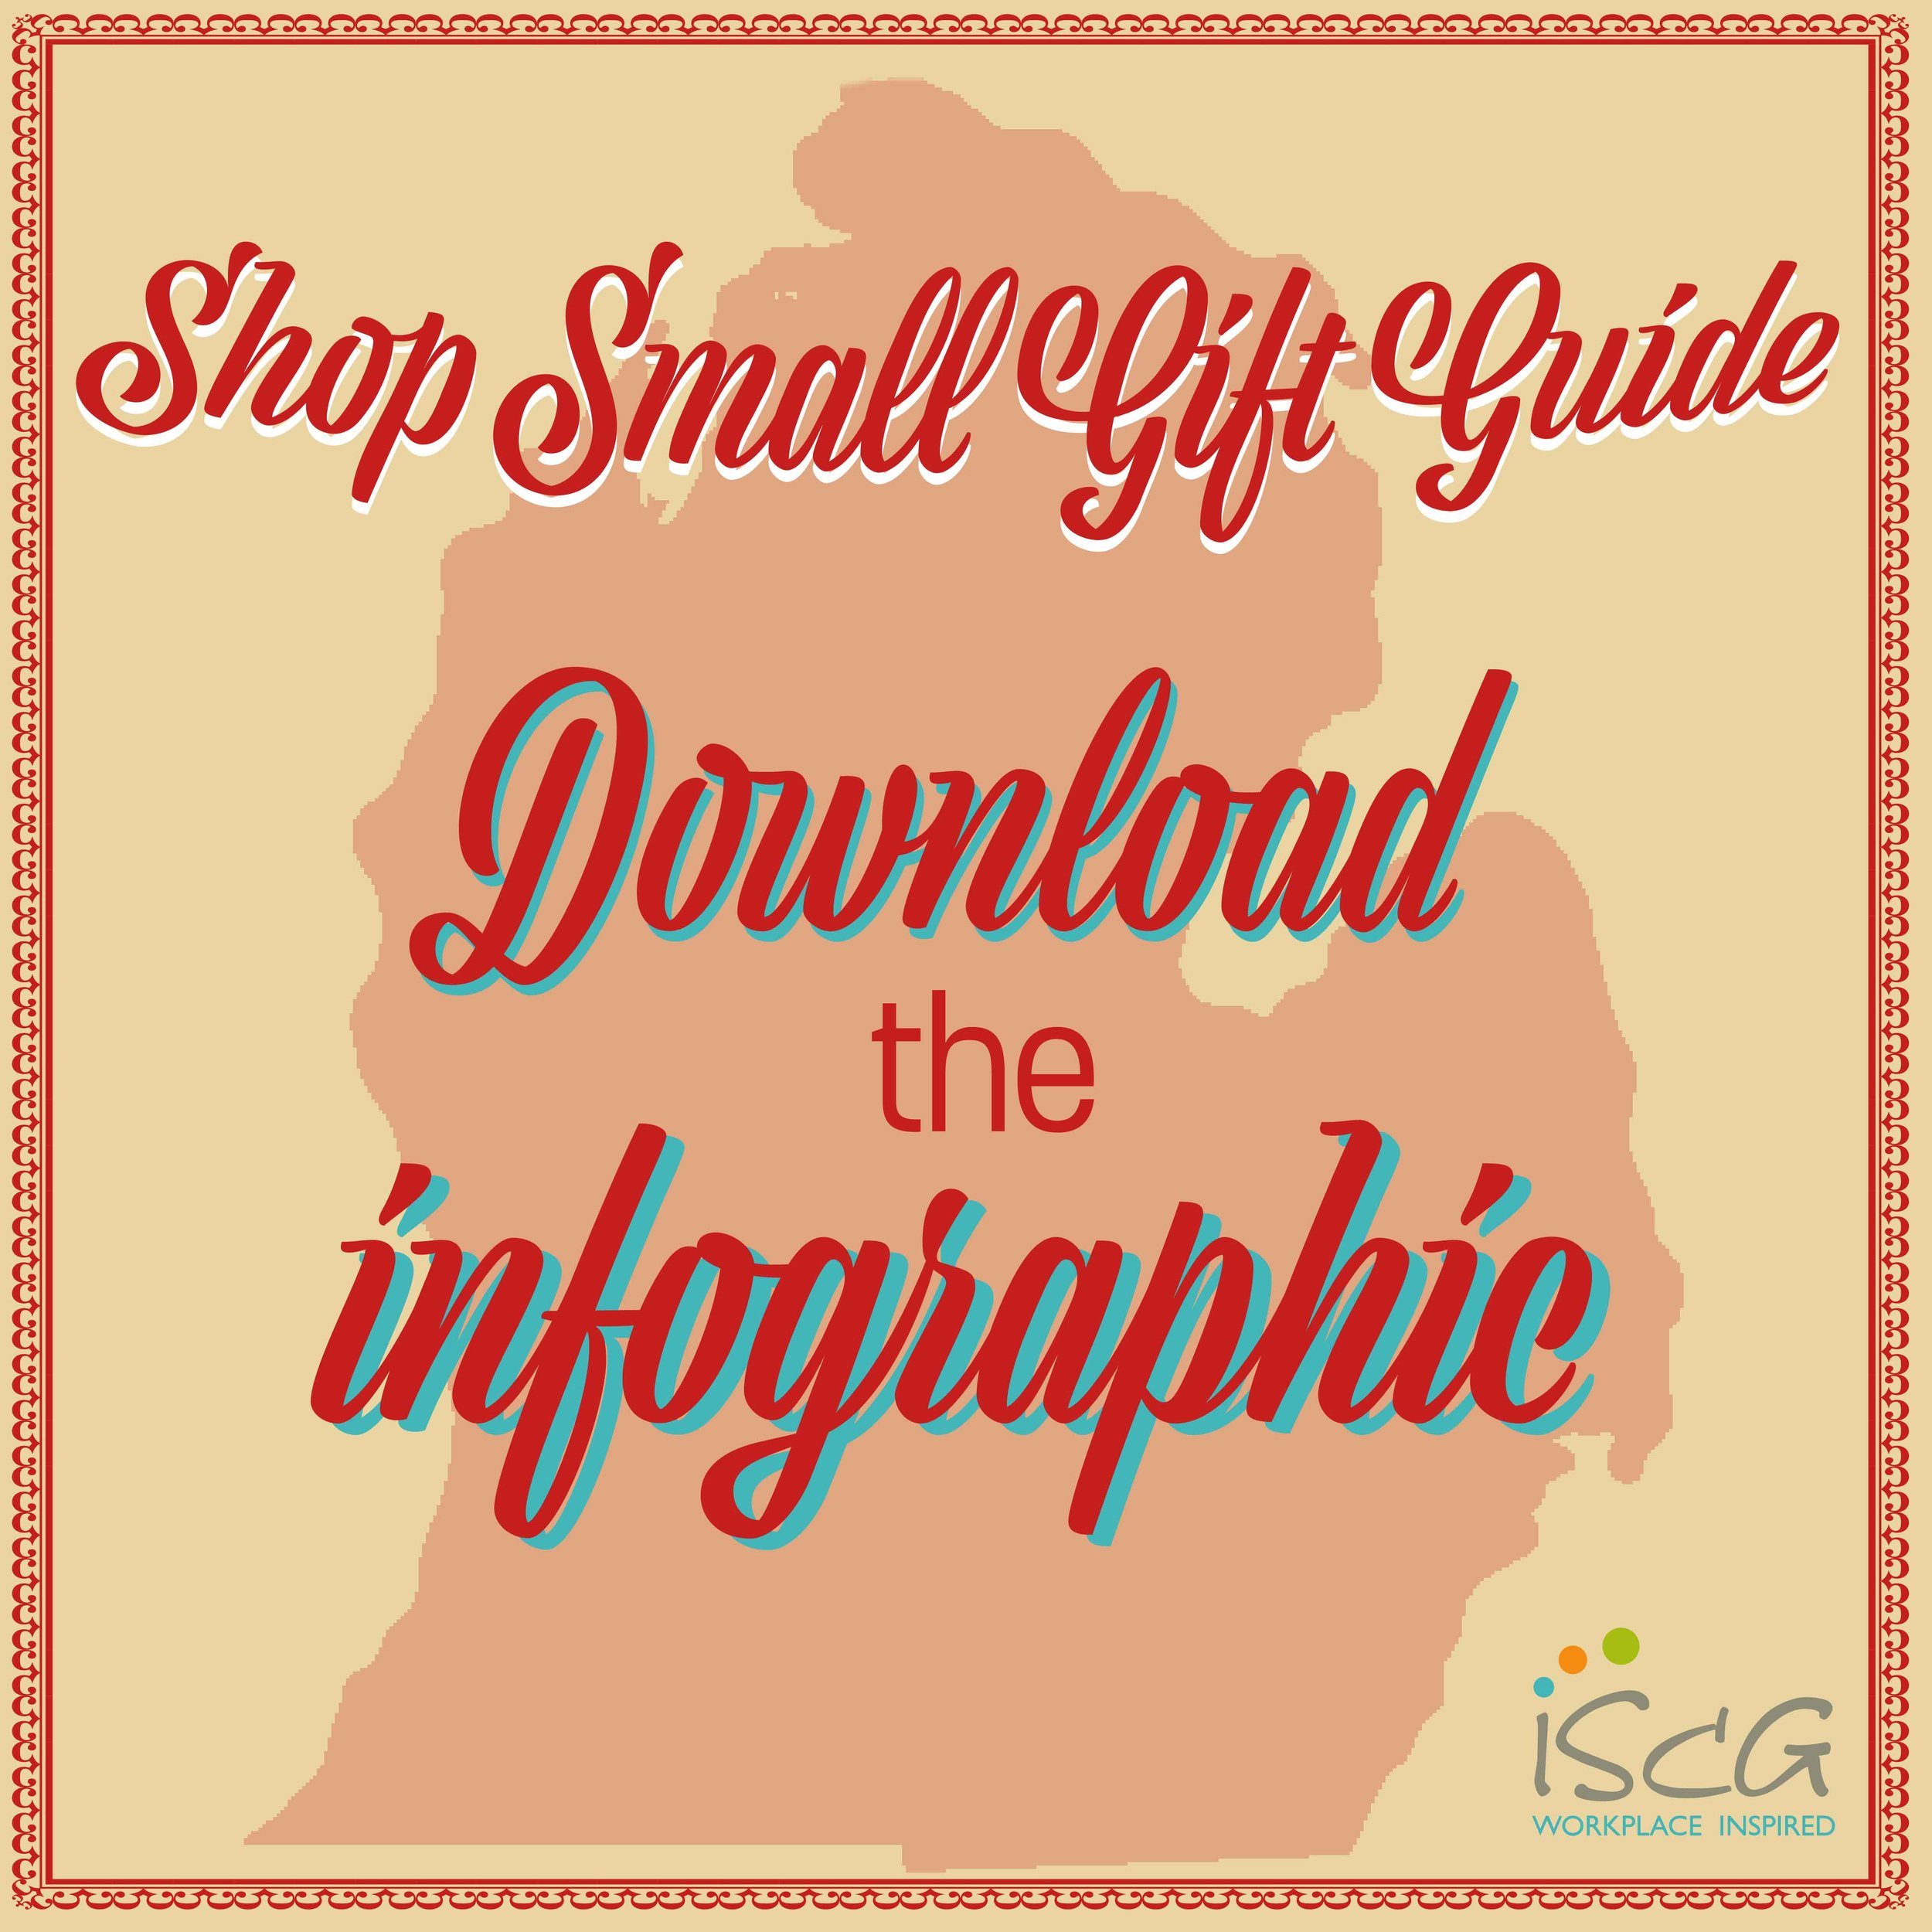 Shop Small Gift Guide for FB.jpg